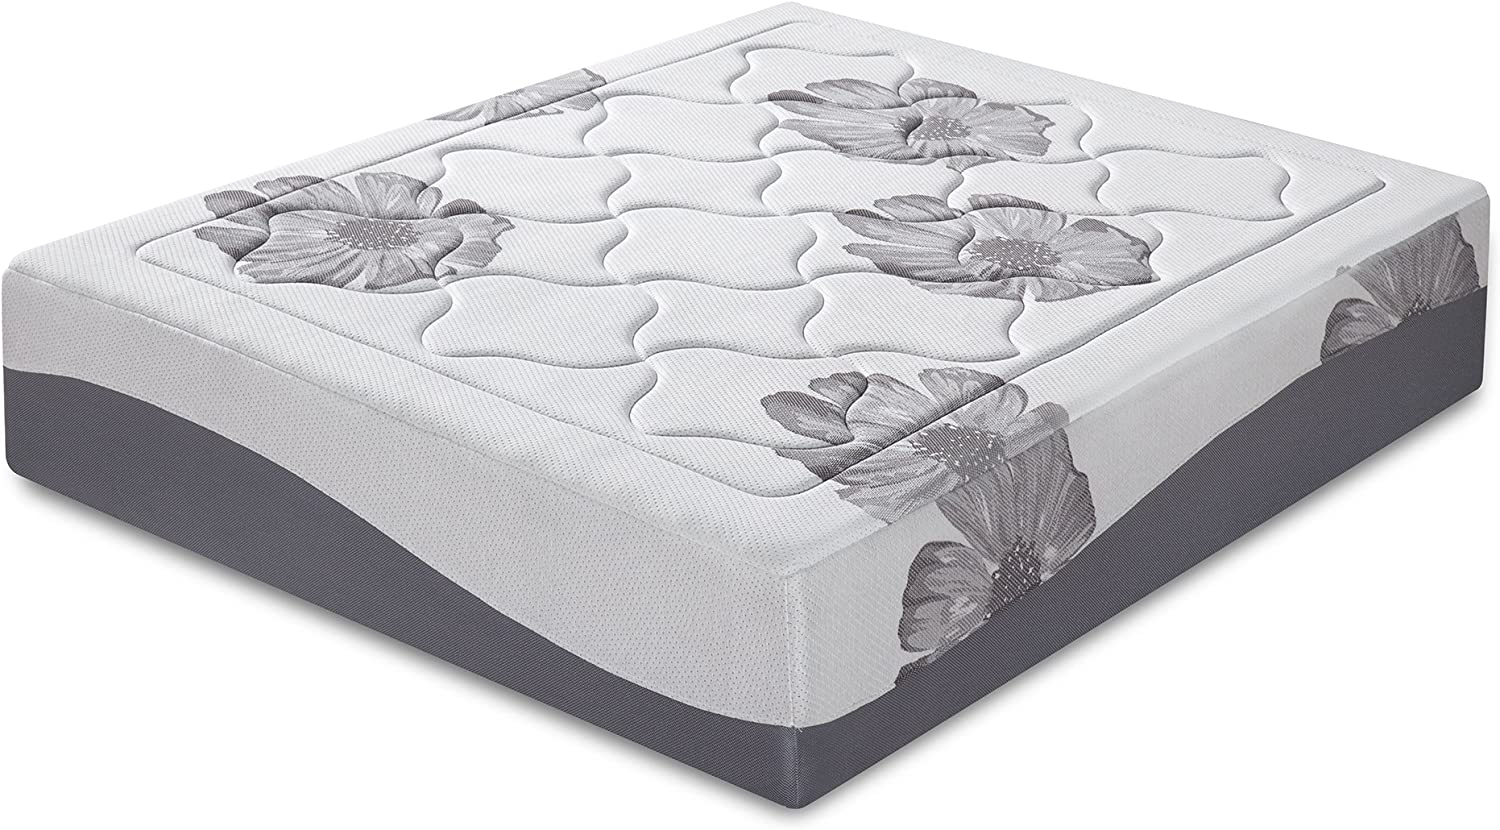 Olee Sleep 12 Inch I Gel Top Tencel Memory Foam Mattress 12FM01F